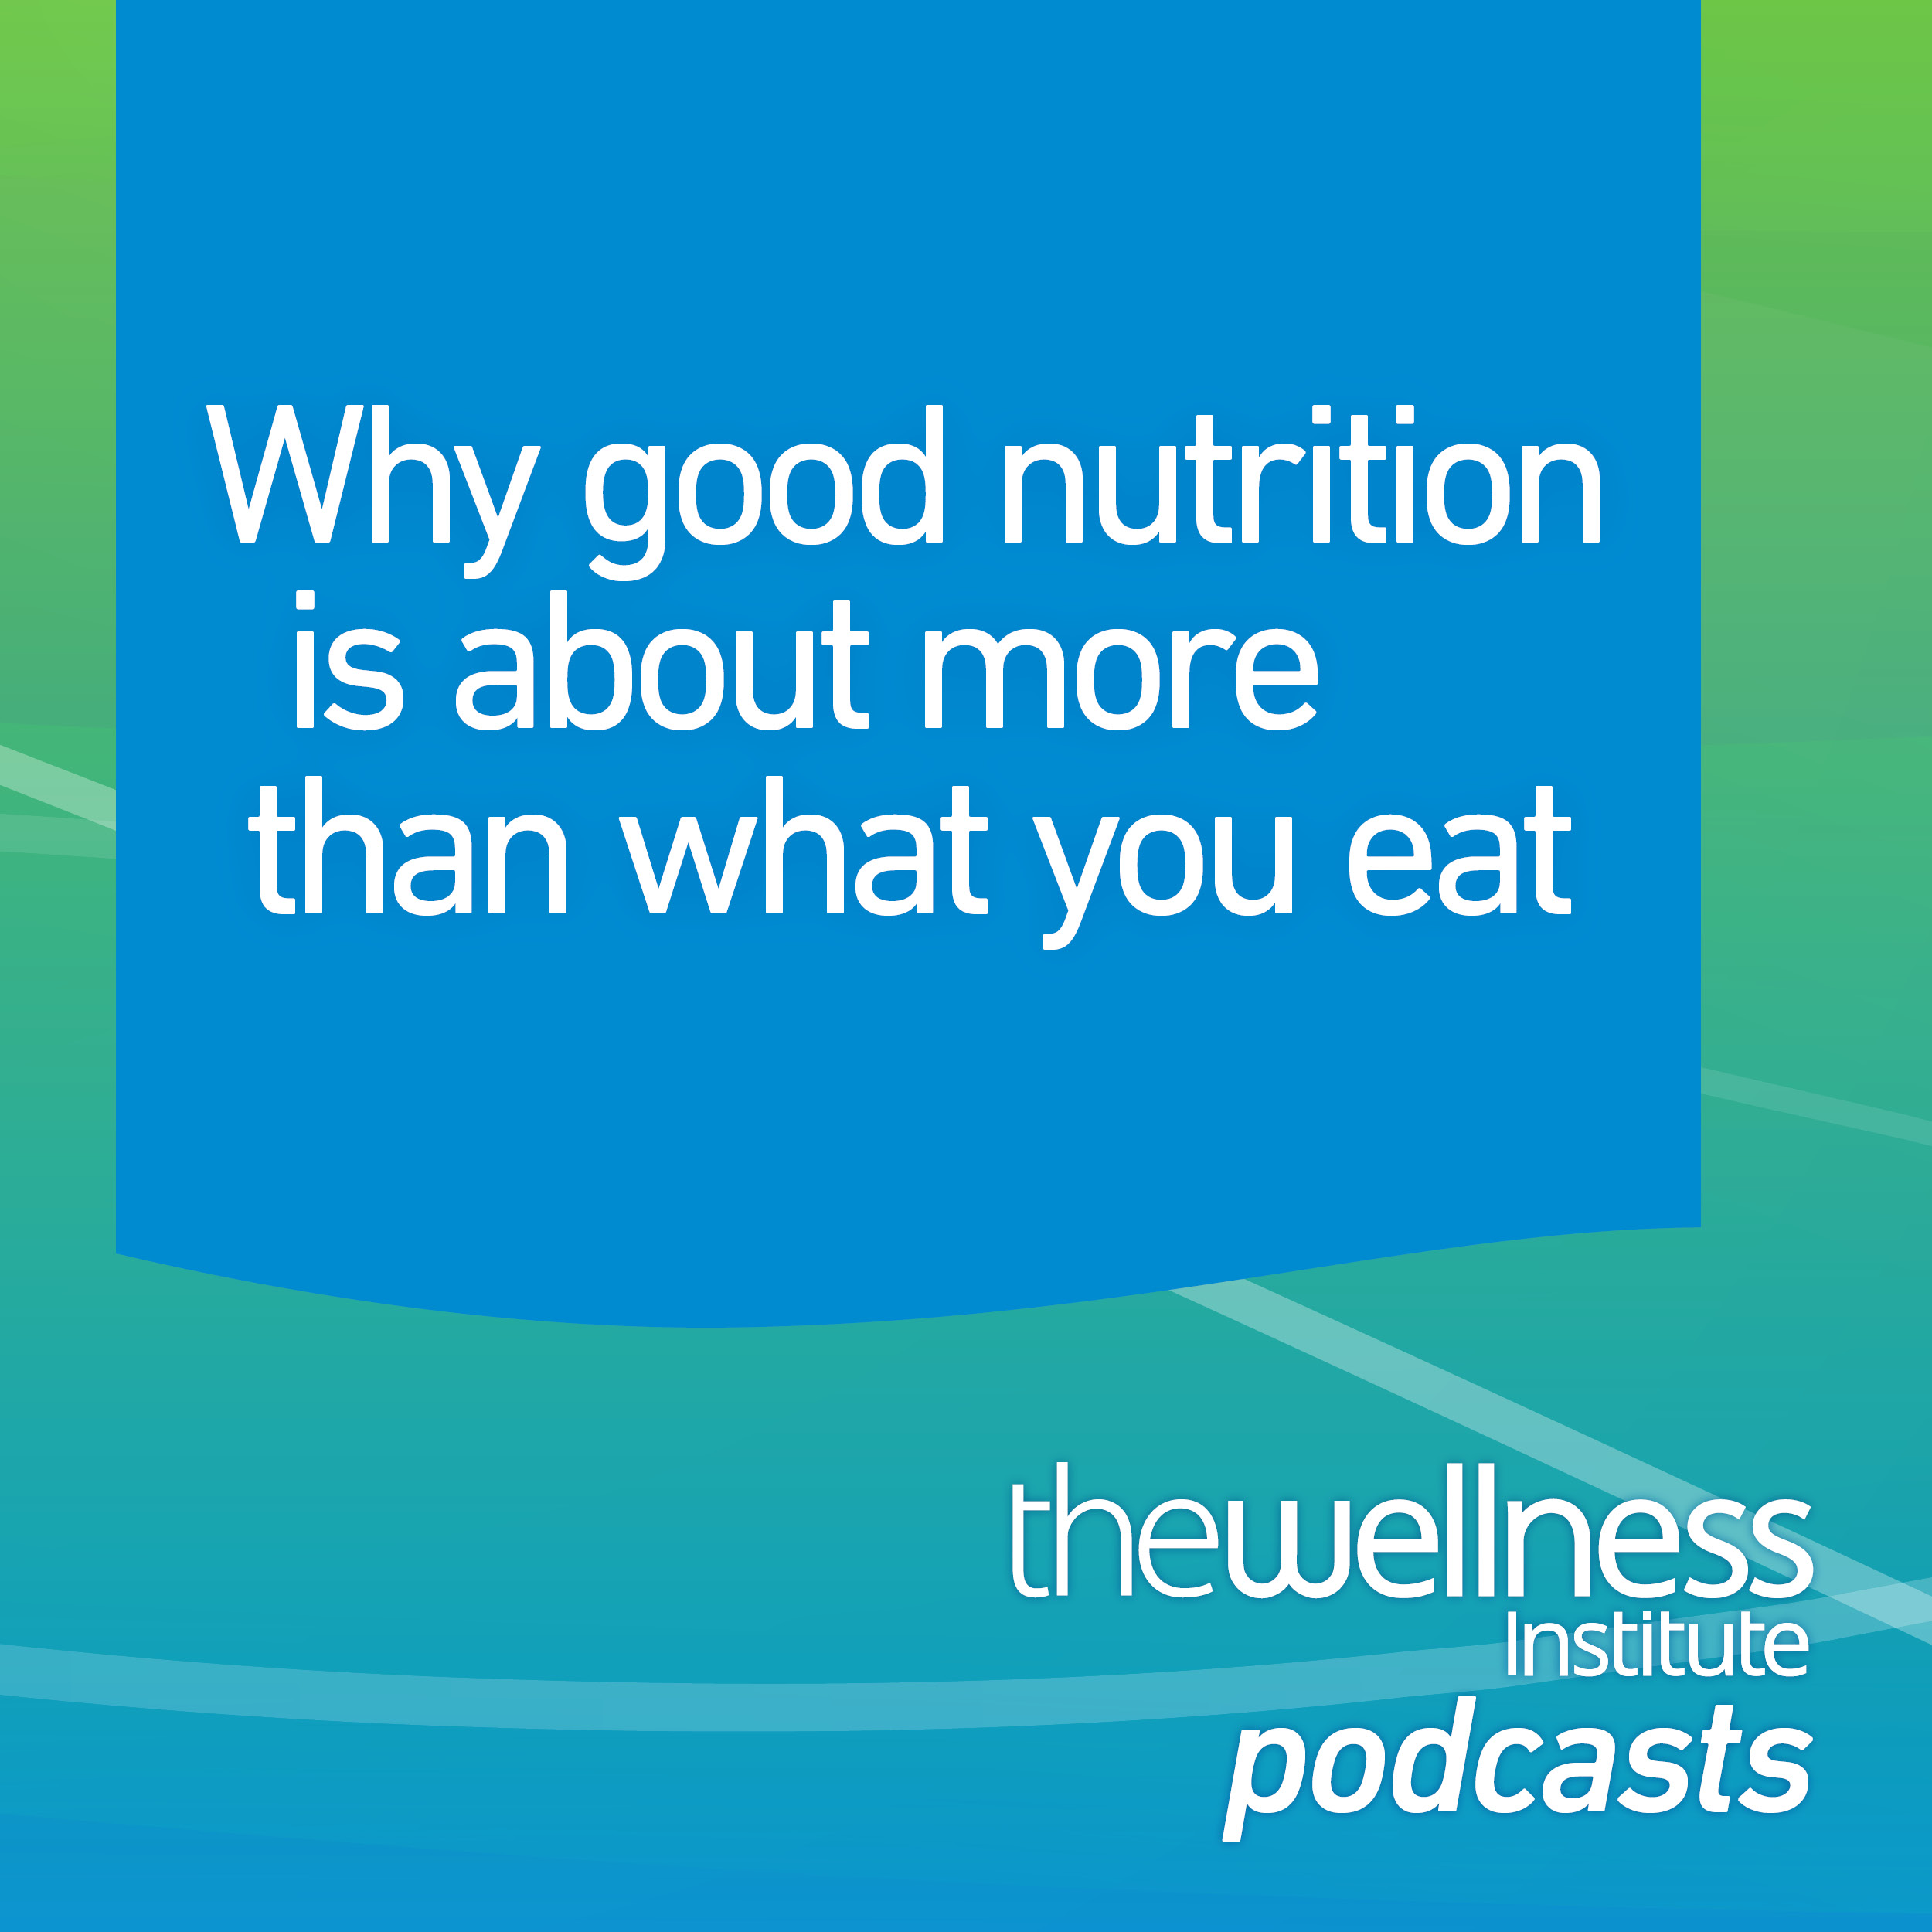 podcast-banner-EPISODE-Why-good-nutrition-is-about-more-than-what-you-eat-1